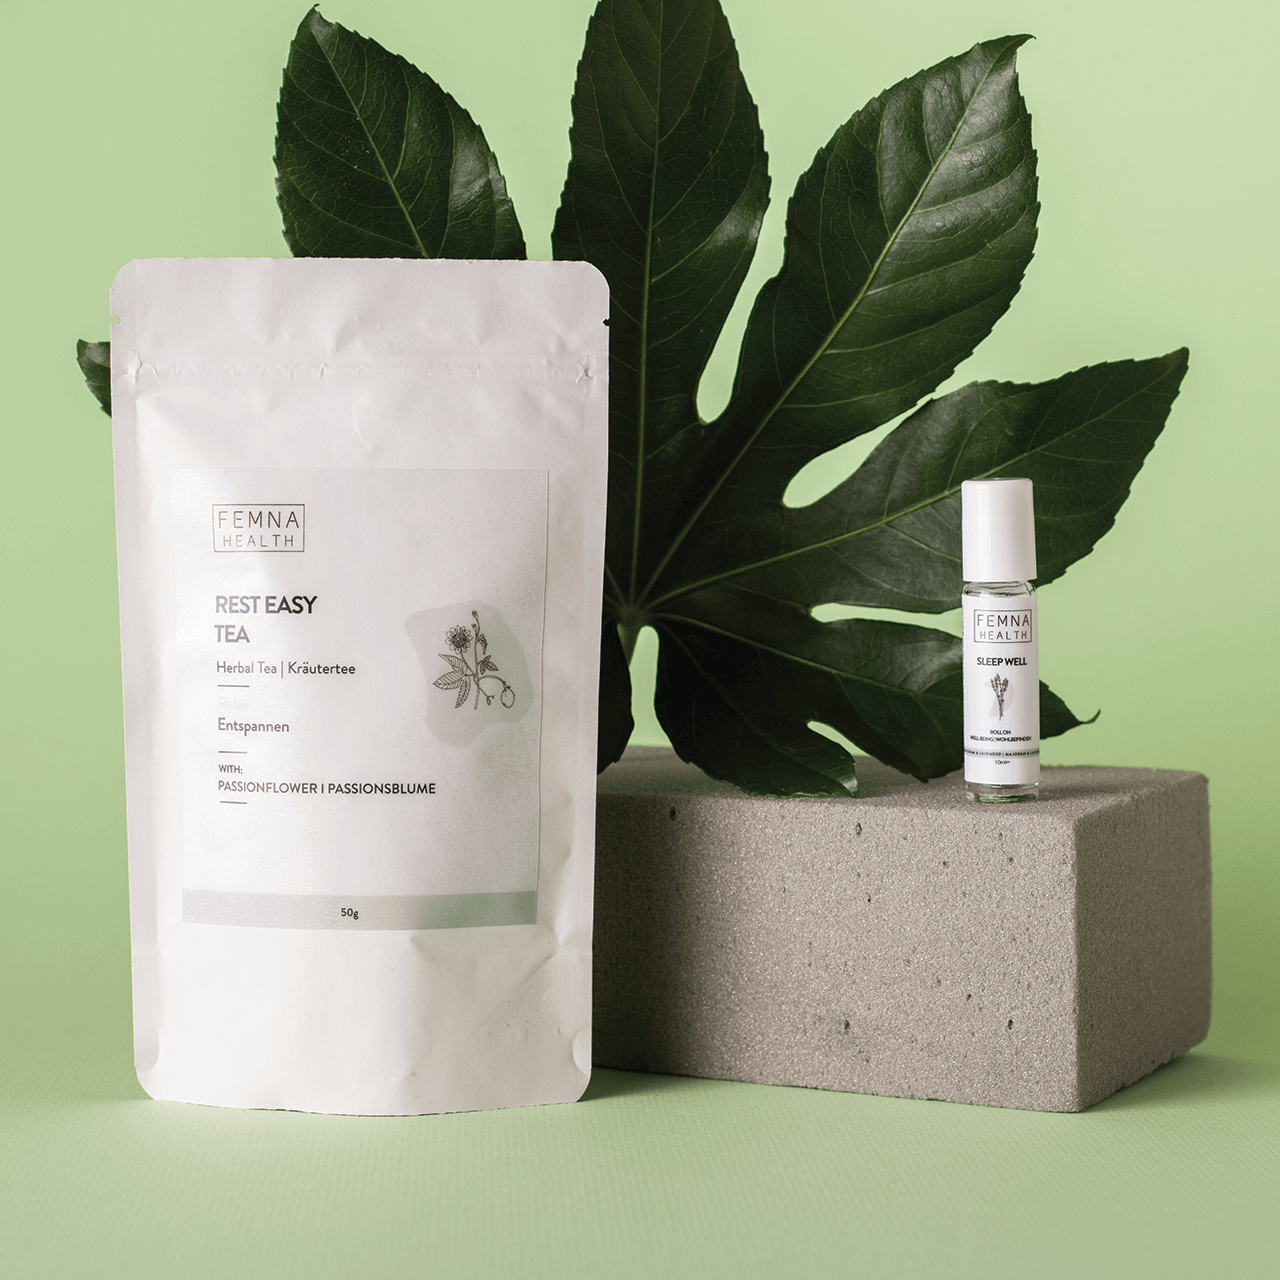 Packaging for Femna's wellbeing products